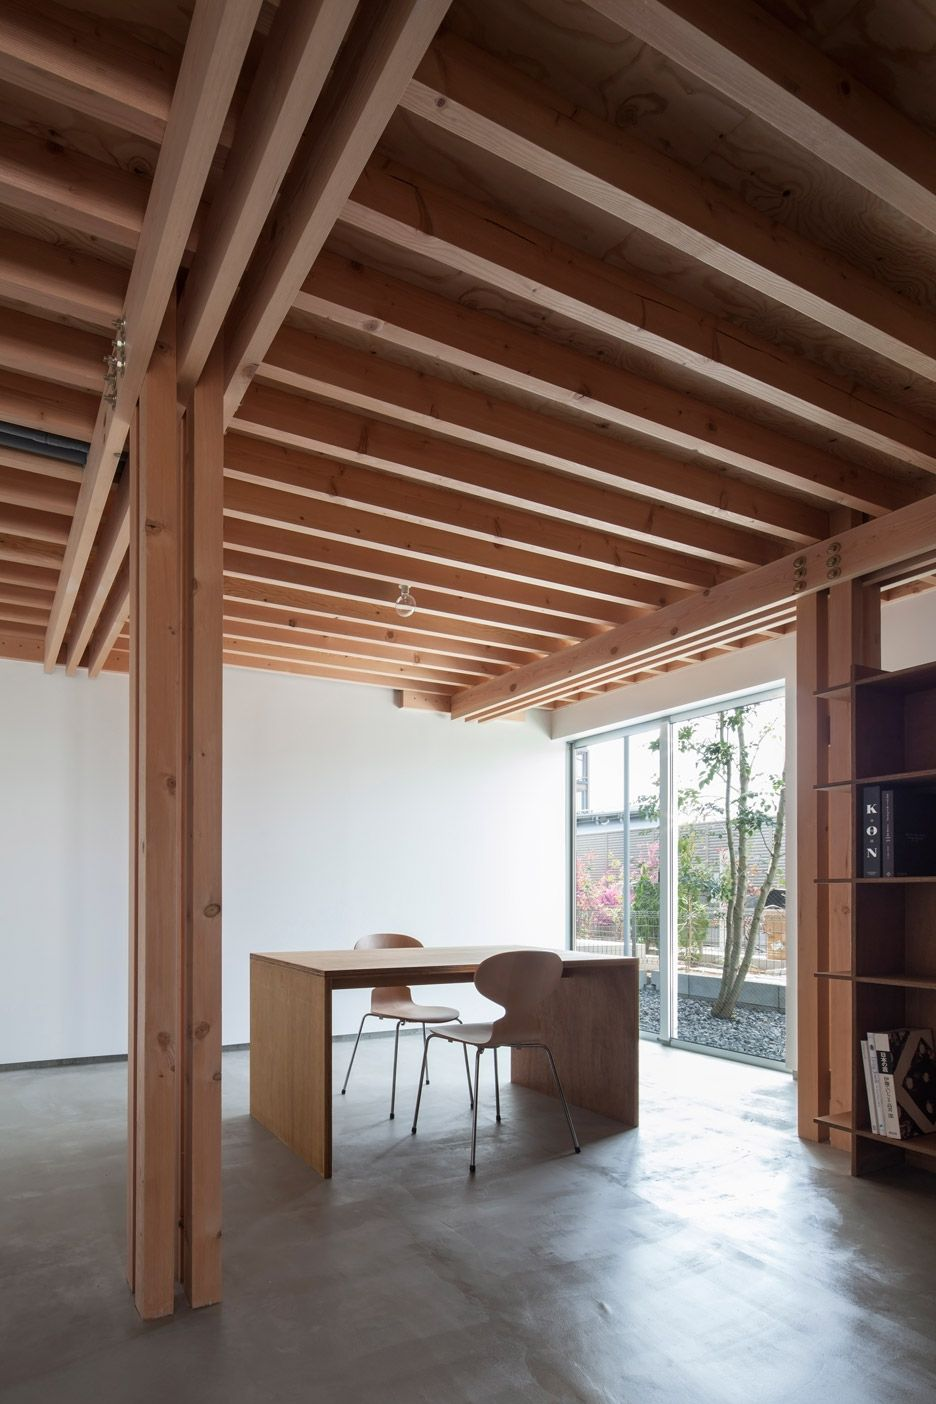 Exposed Ceiling Beams And Joists Composite Timber Column